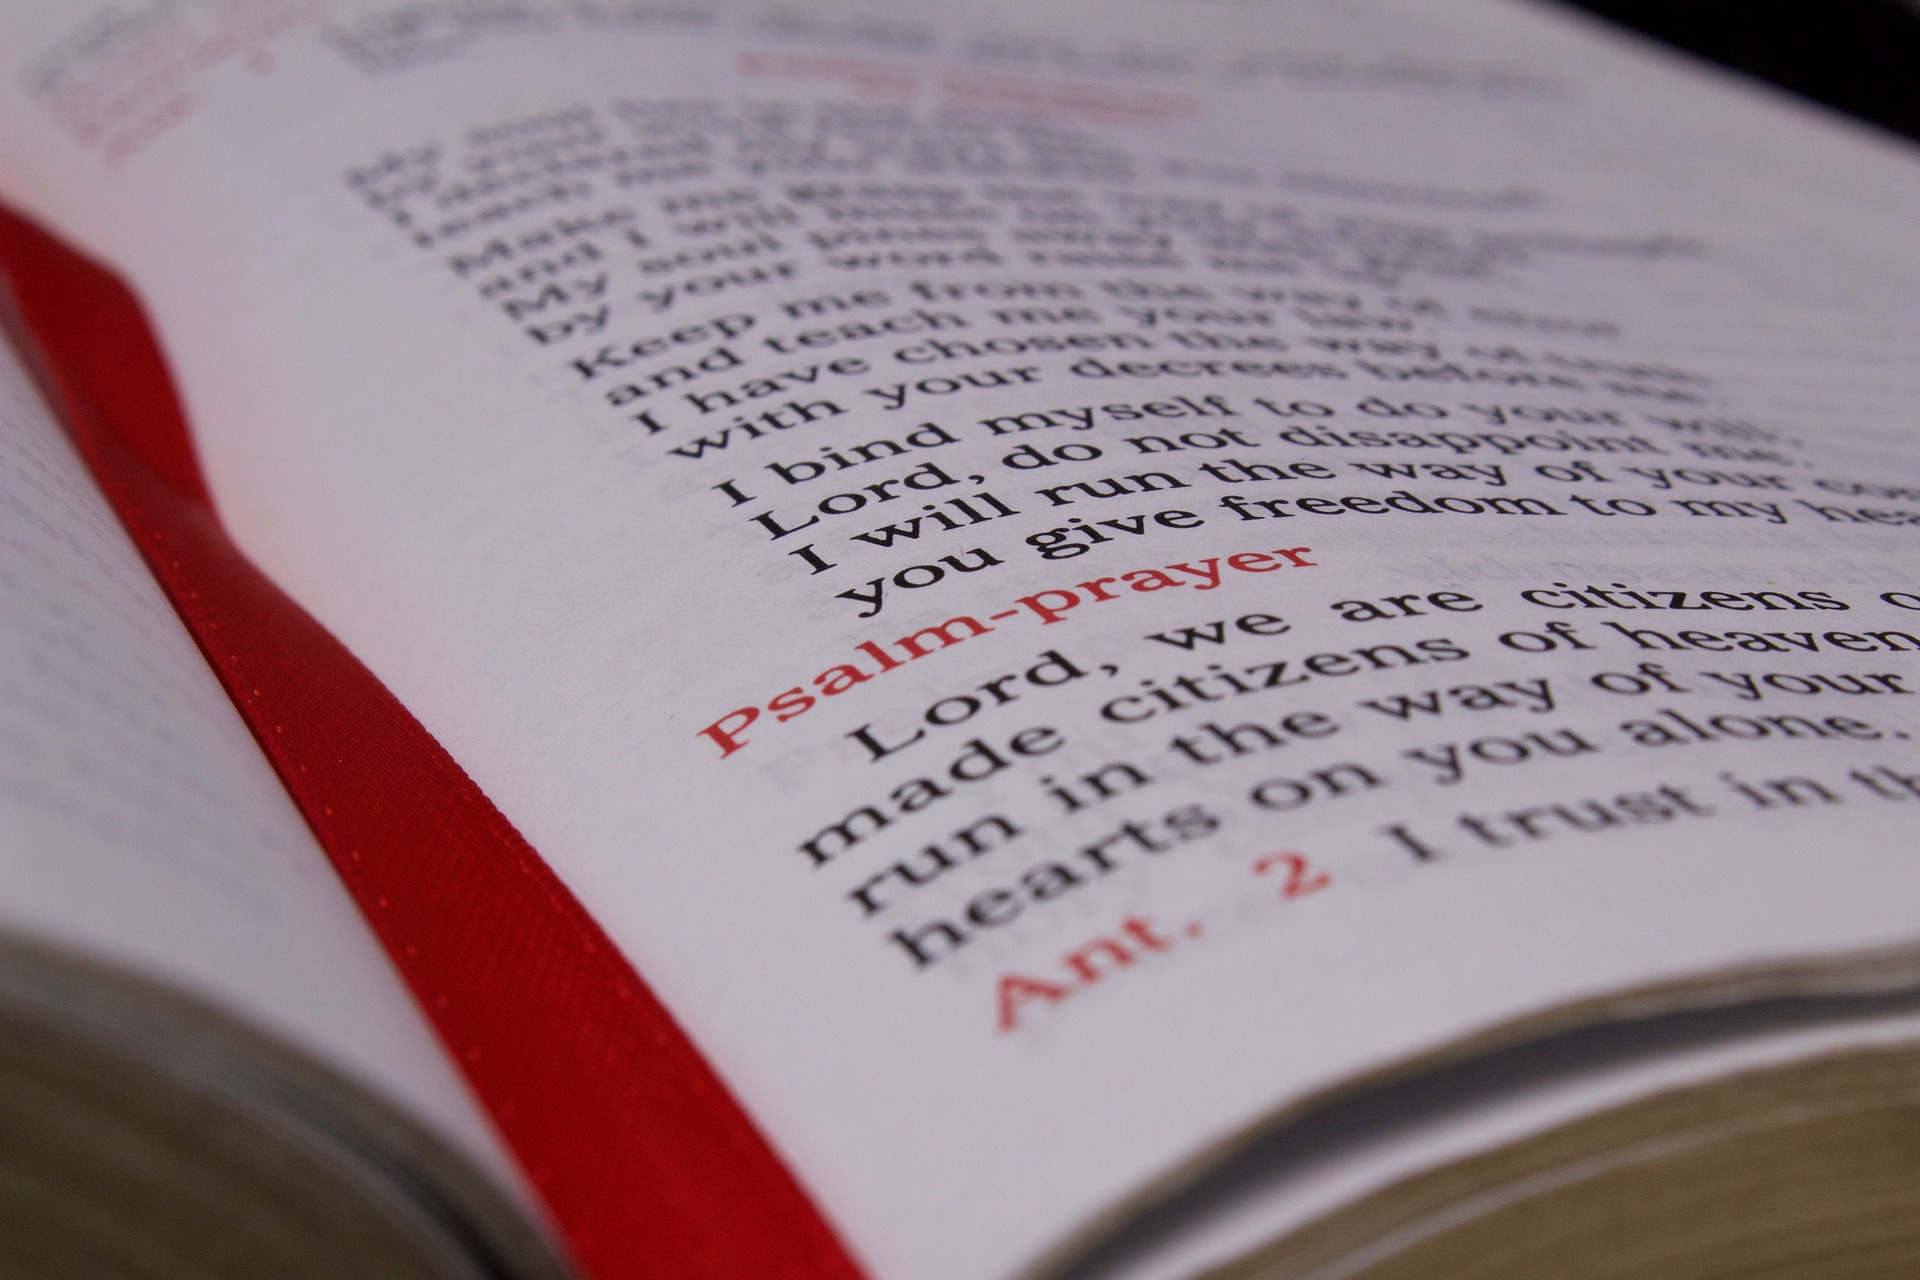 close-up of open breviary with red ribbon